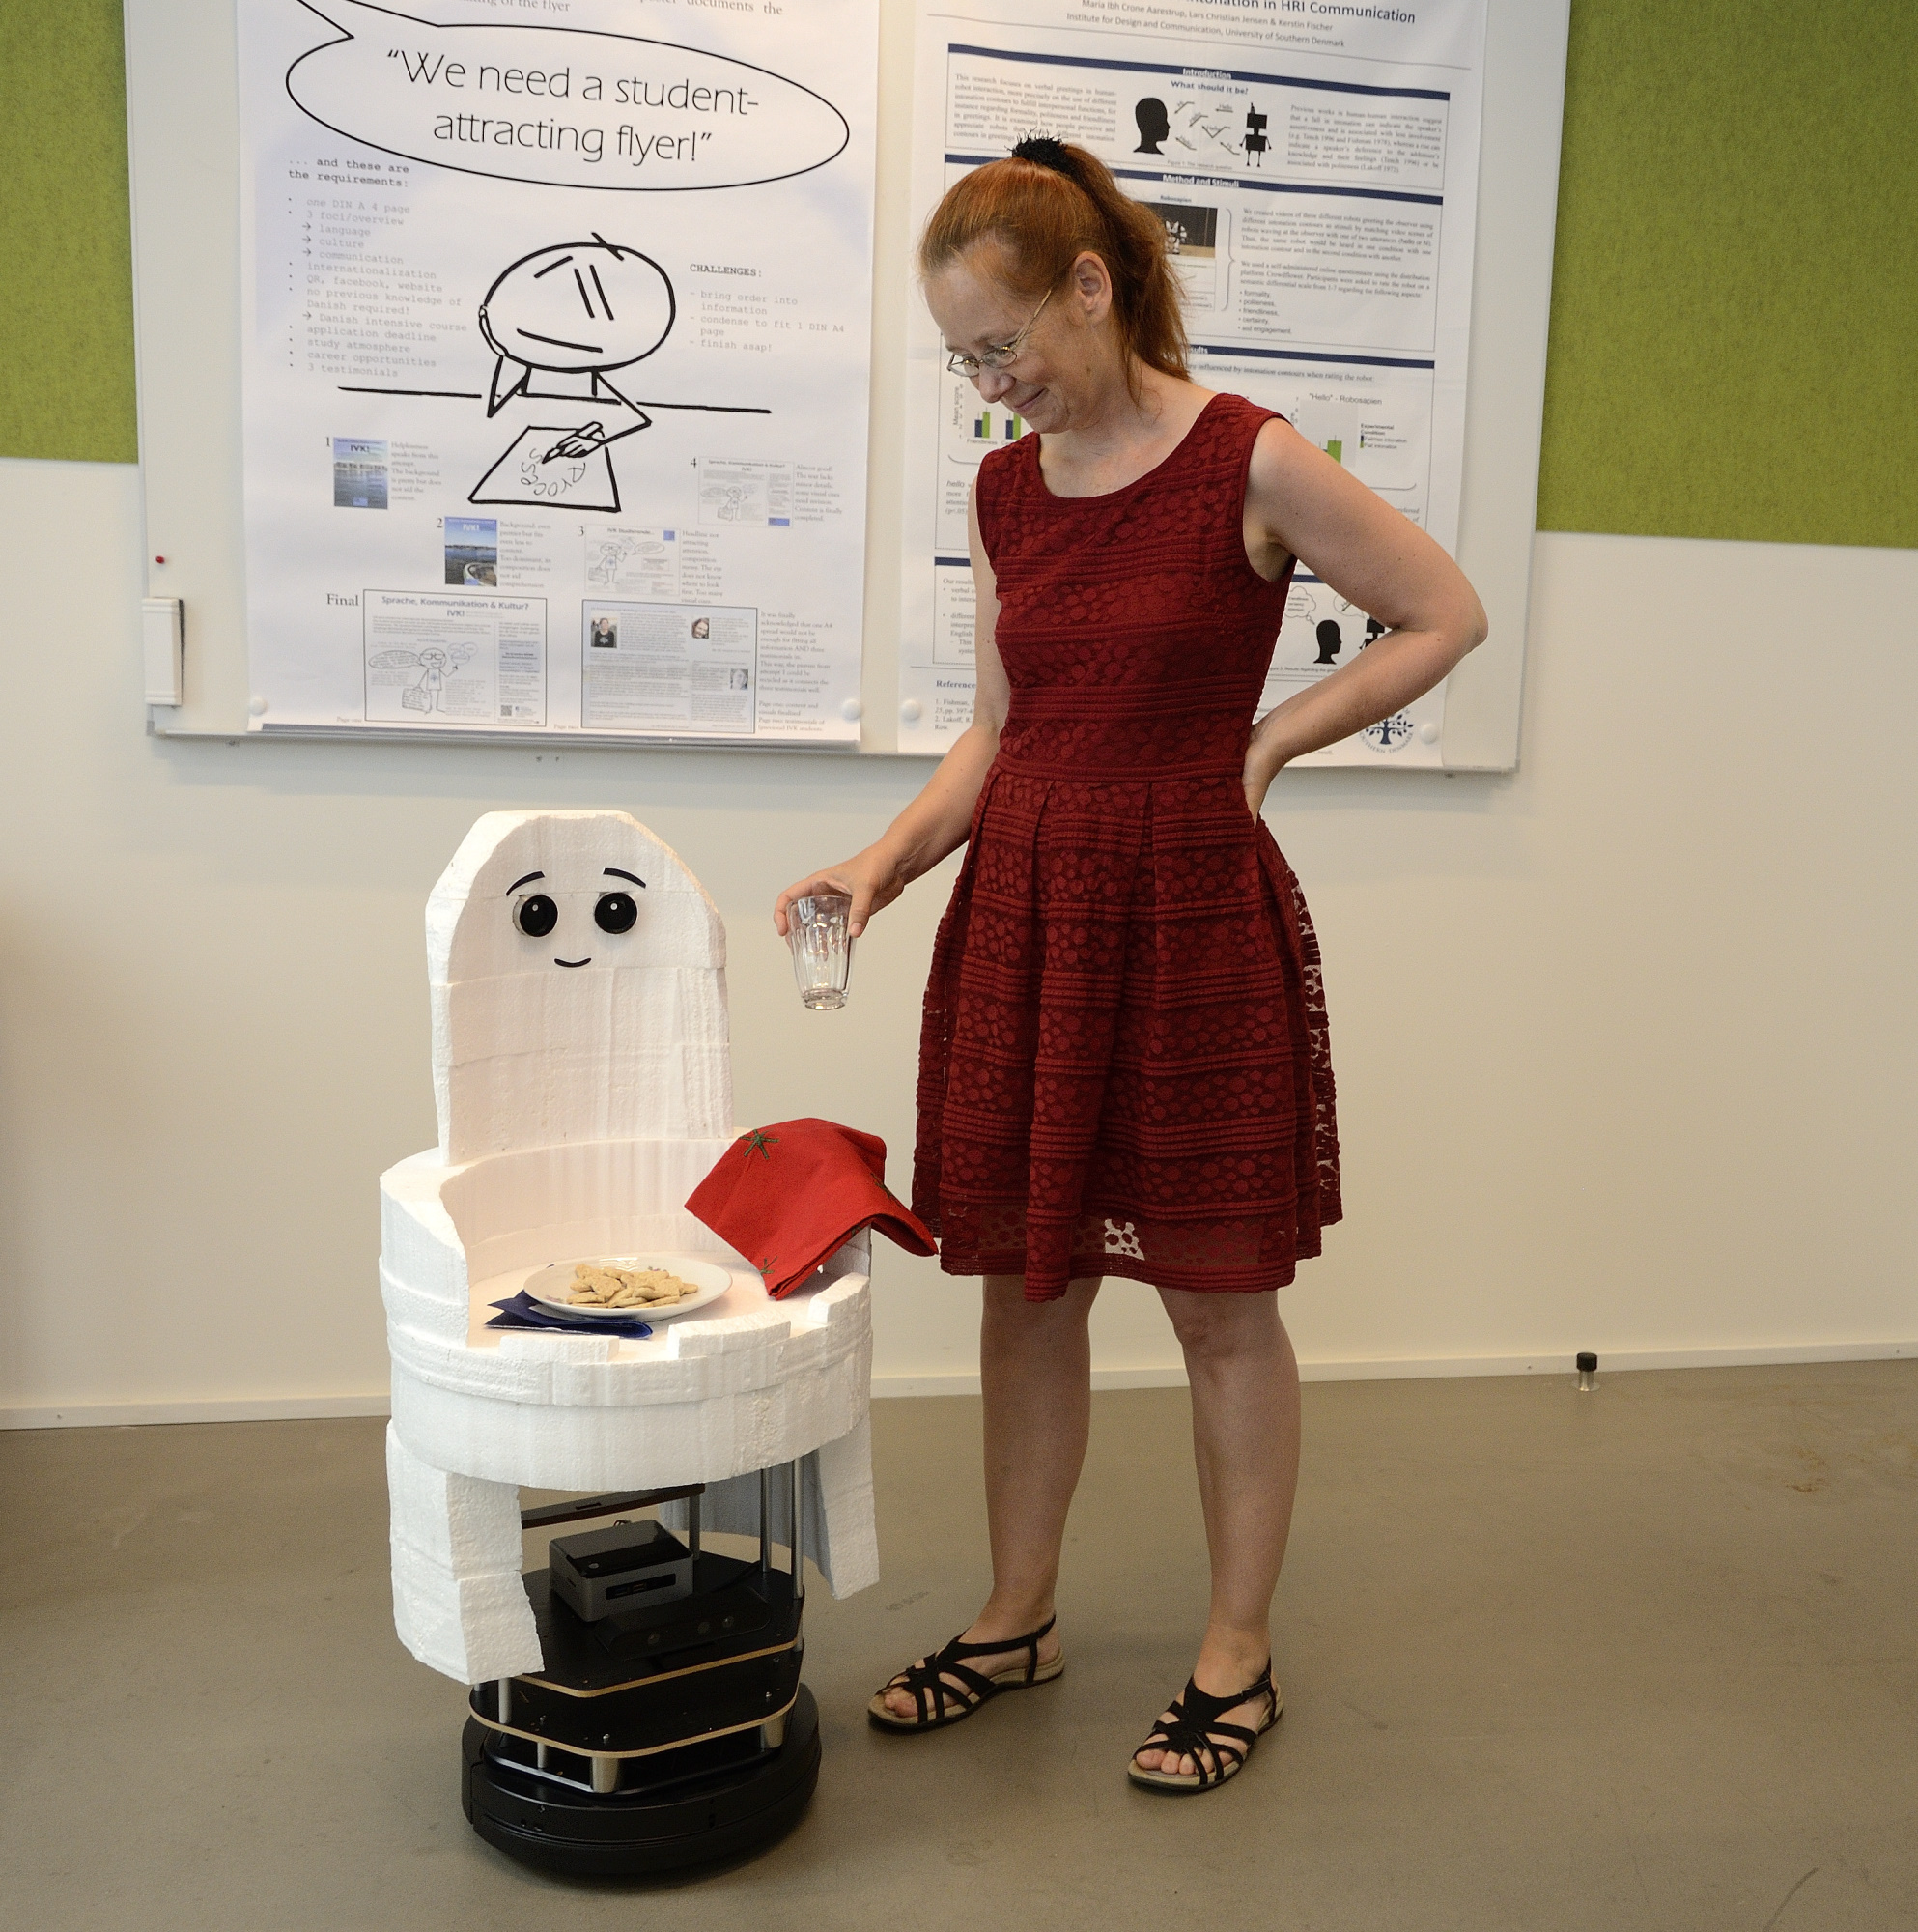 Kerstin Fischer experimenting with Casper robot for SMOOTH project.